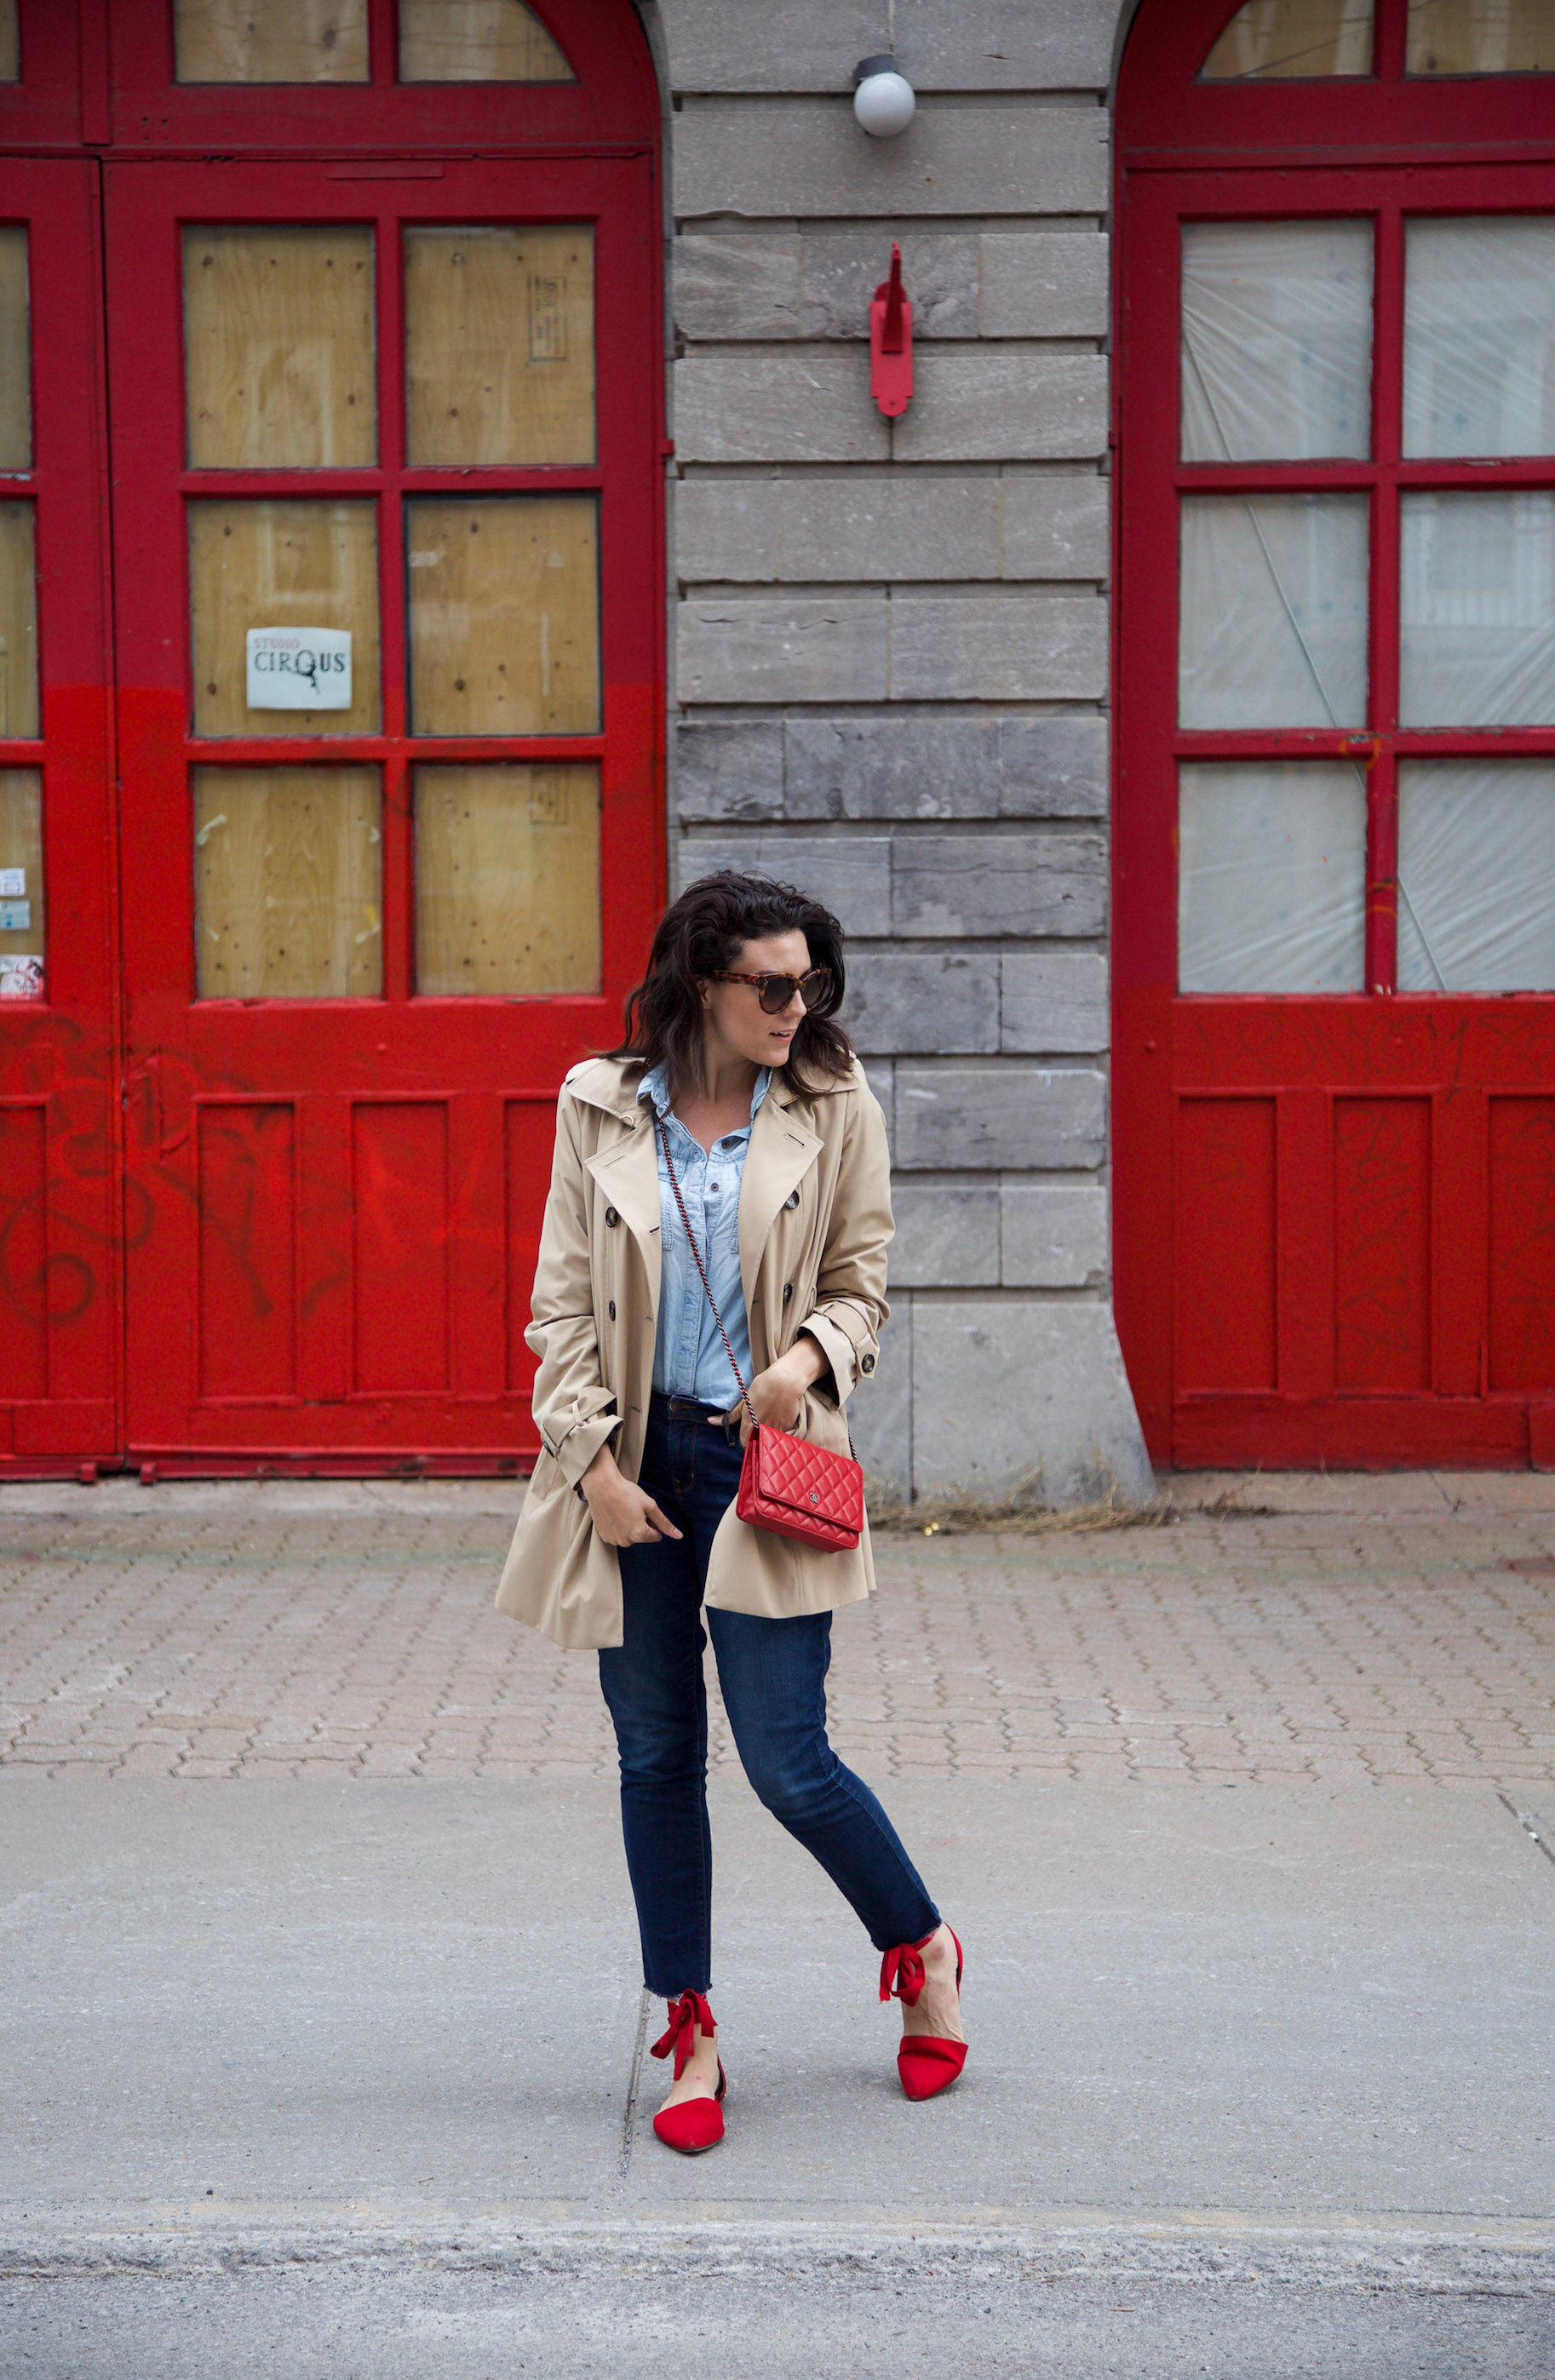 denim-on-denim-outfit-with-trench-coat-and-red-accessories8.jpg